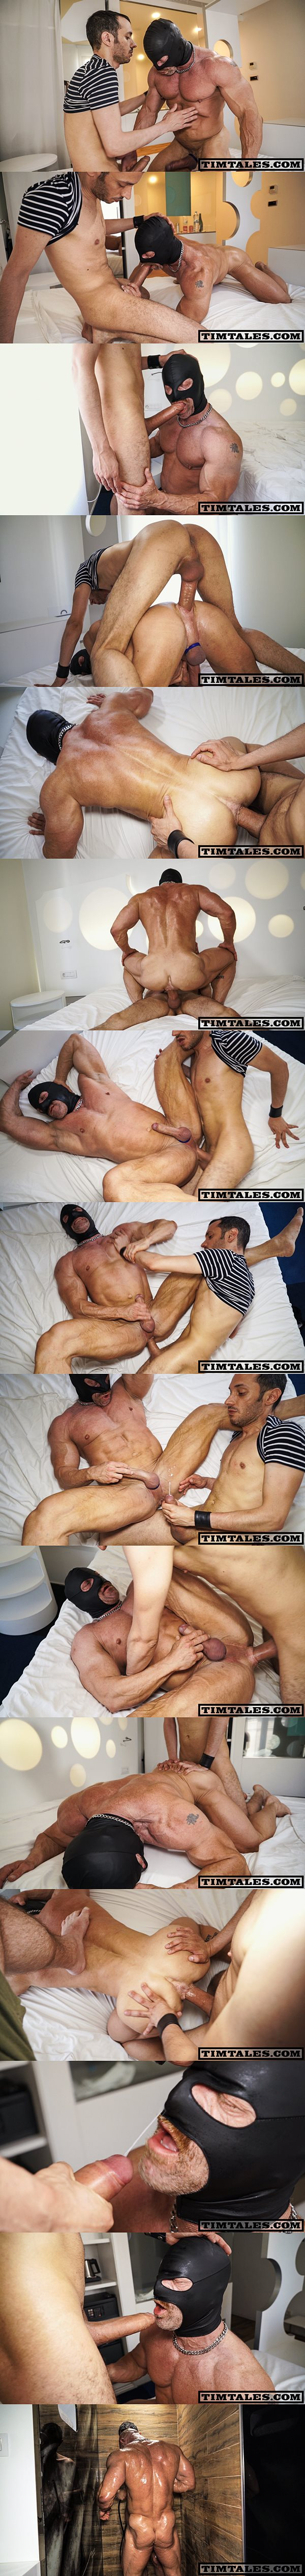 Monster-cocked Esteban barebacks muscle daddy Maximus until he breeds Maximus at Timtales 02